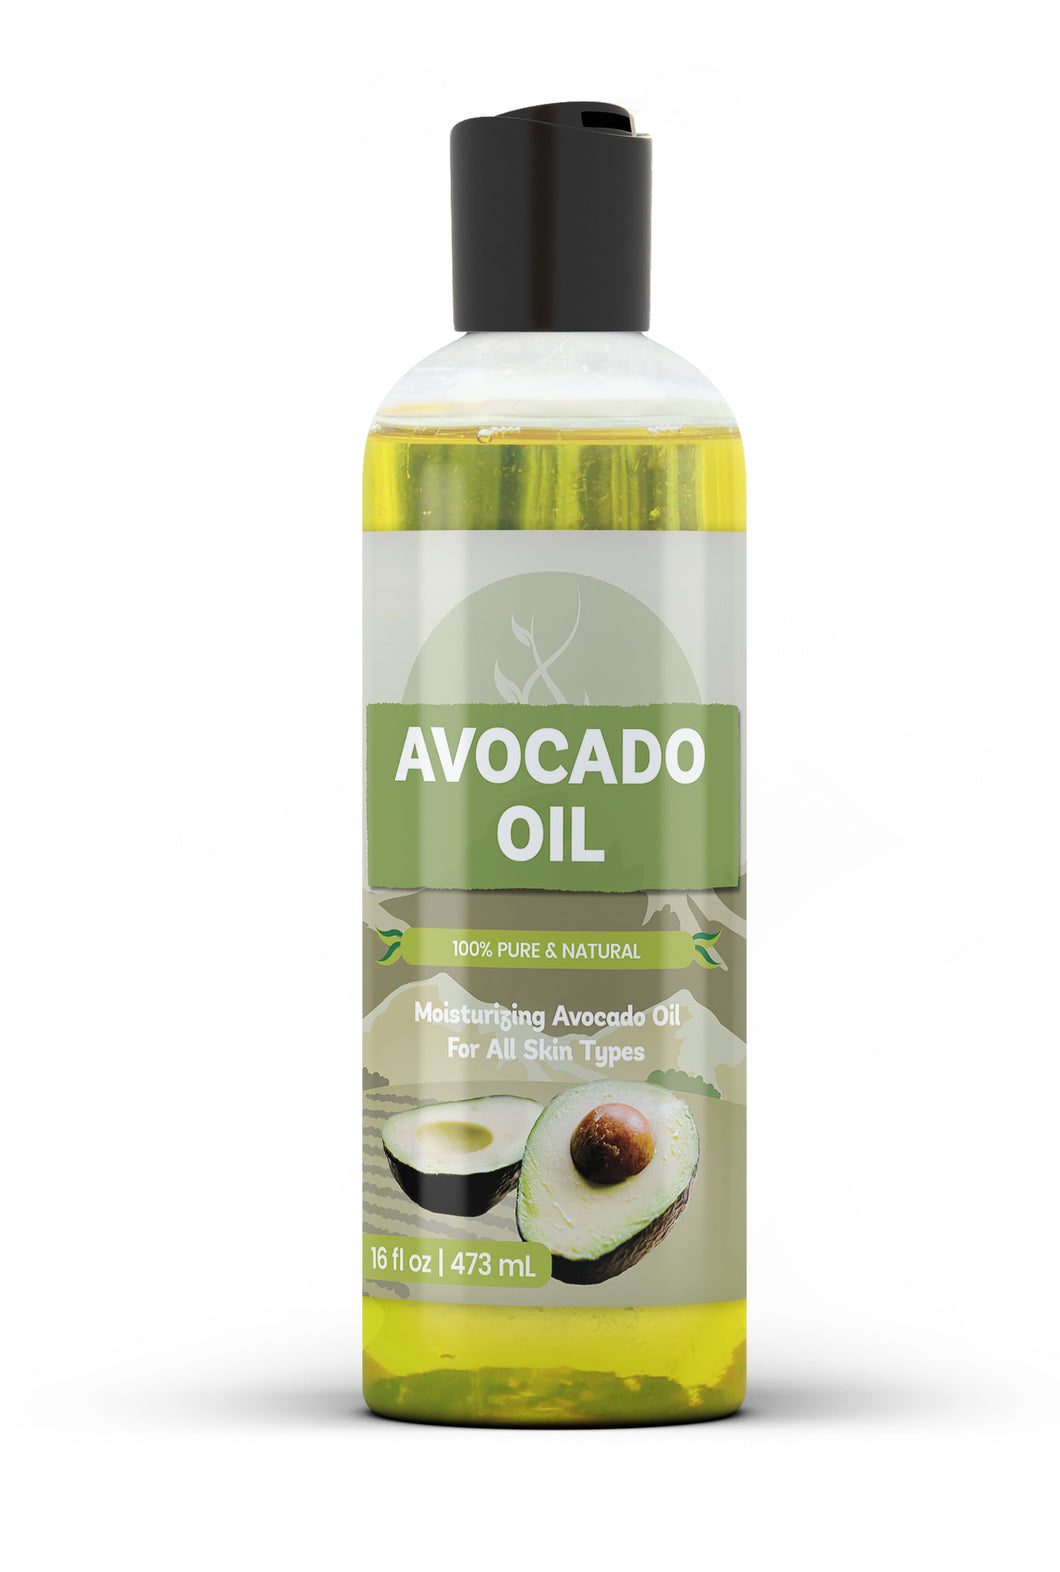 Avocado Oil - 100% Pure, Kosher, All-Natural, Nutrient & Vitamin-Rich Moisturizing Oil for Healthier Hair, Nails & Skin